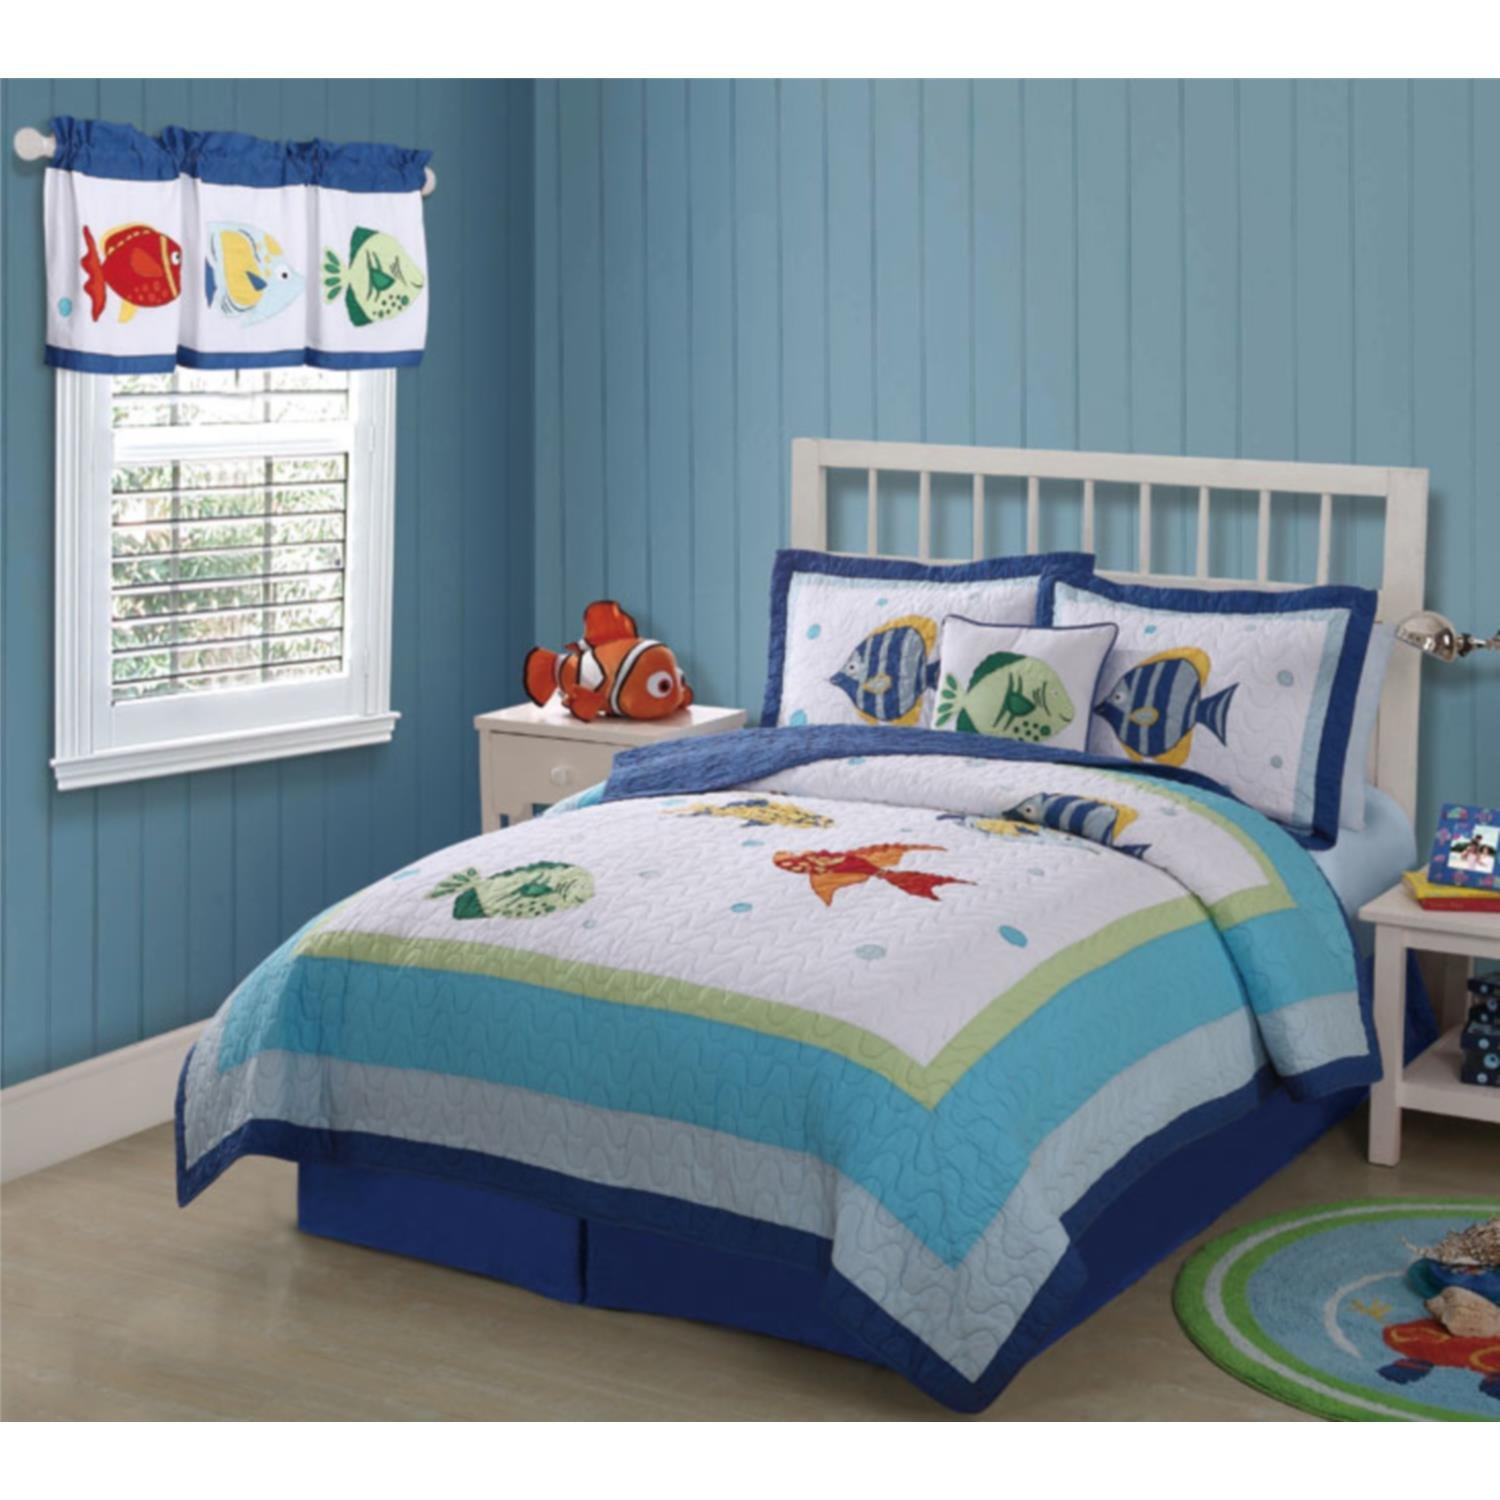 Pem America Bedding Reeves Sunset Stripe pc. Comforter Sets Queen $ B See more like this.